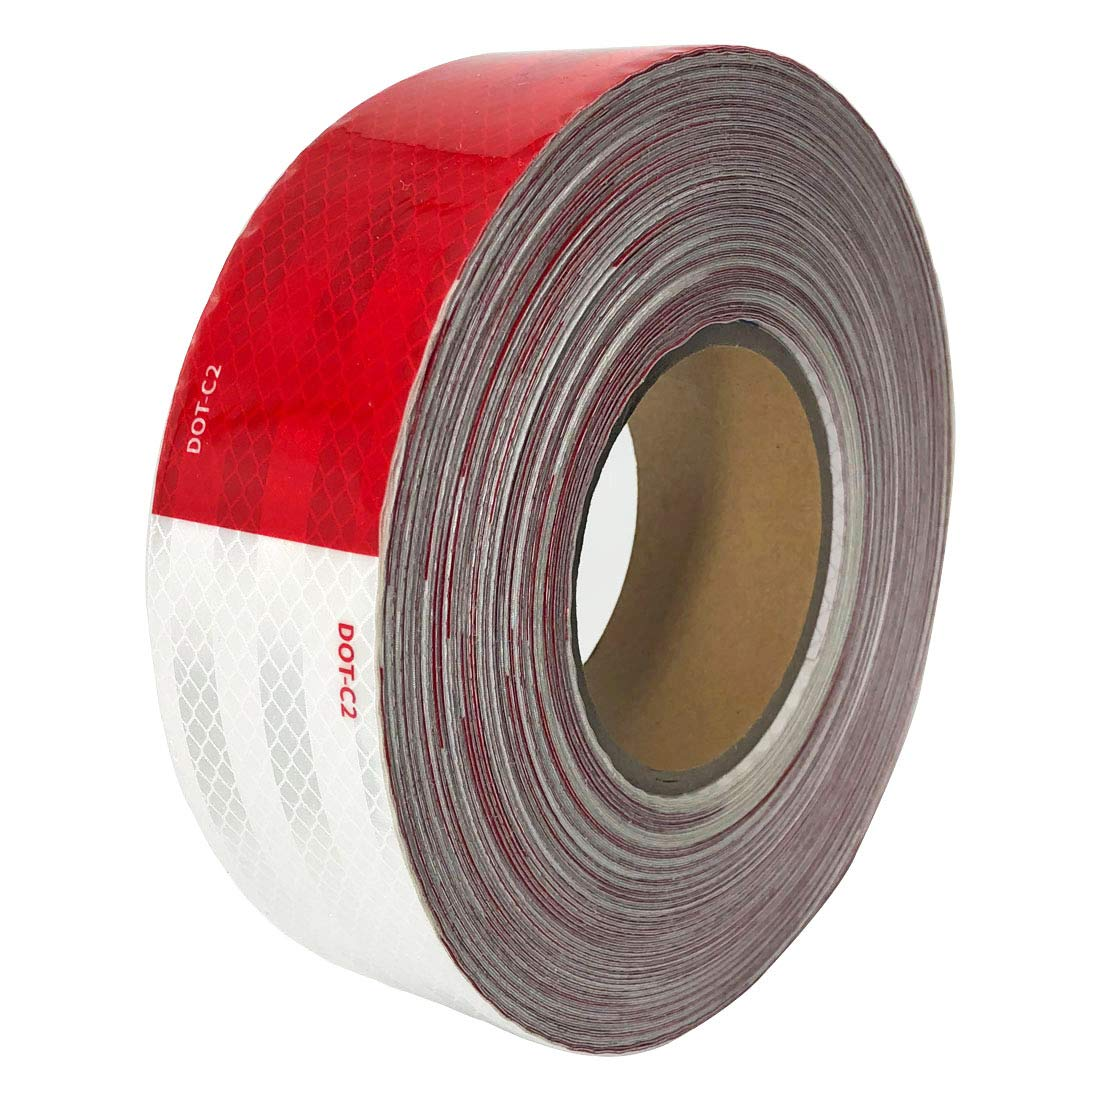 Dot-C2 Red/White Reflective Safety Tape 2 Inch x 150 Feet - for Vehicles,Trailers,Boats,Signs (2 In x 150 Ft)